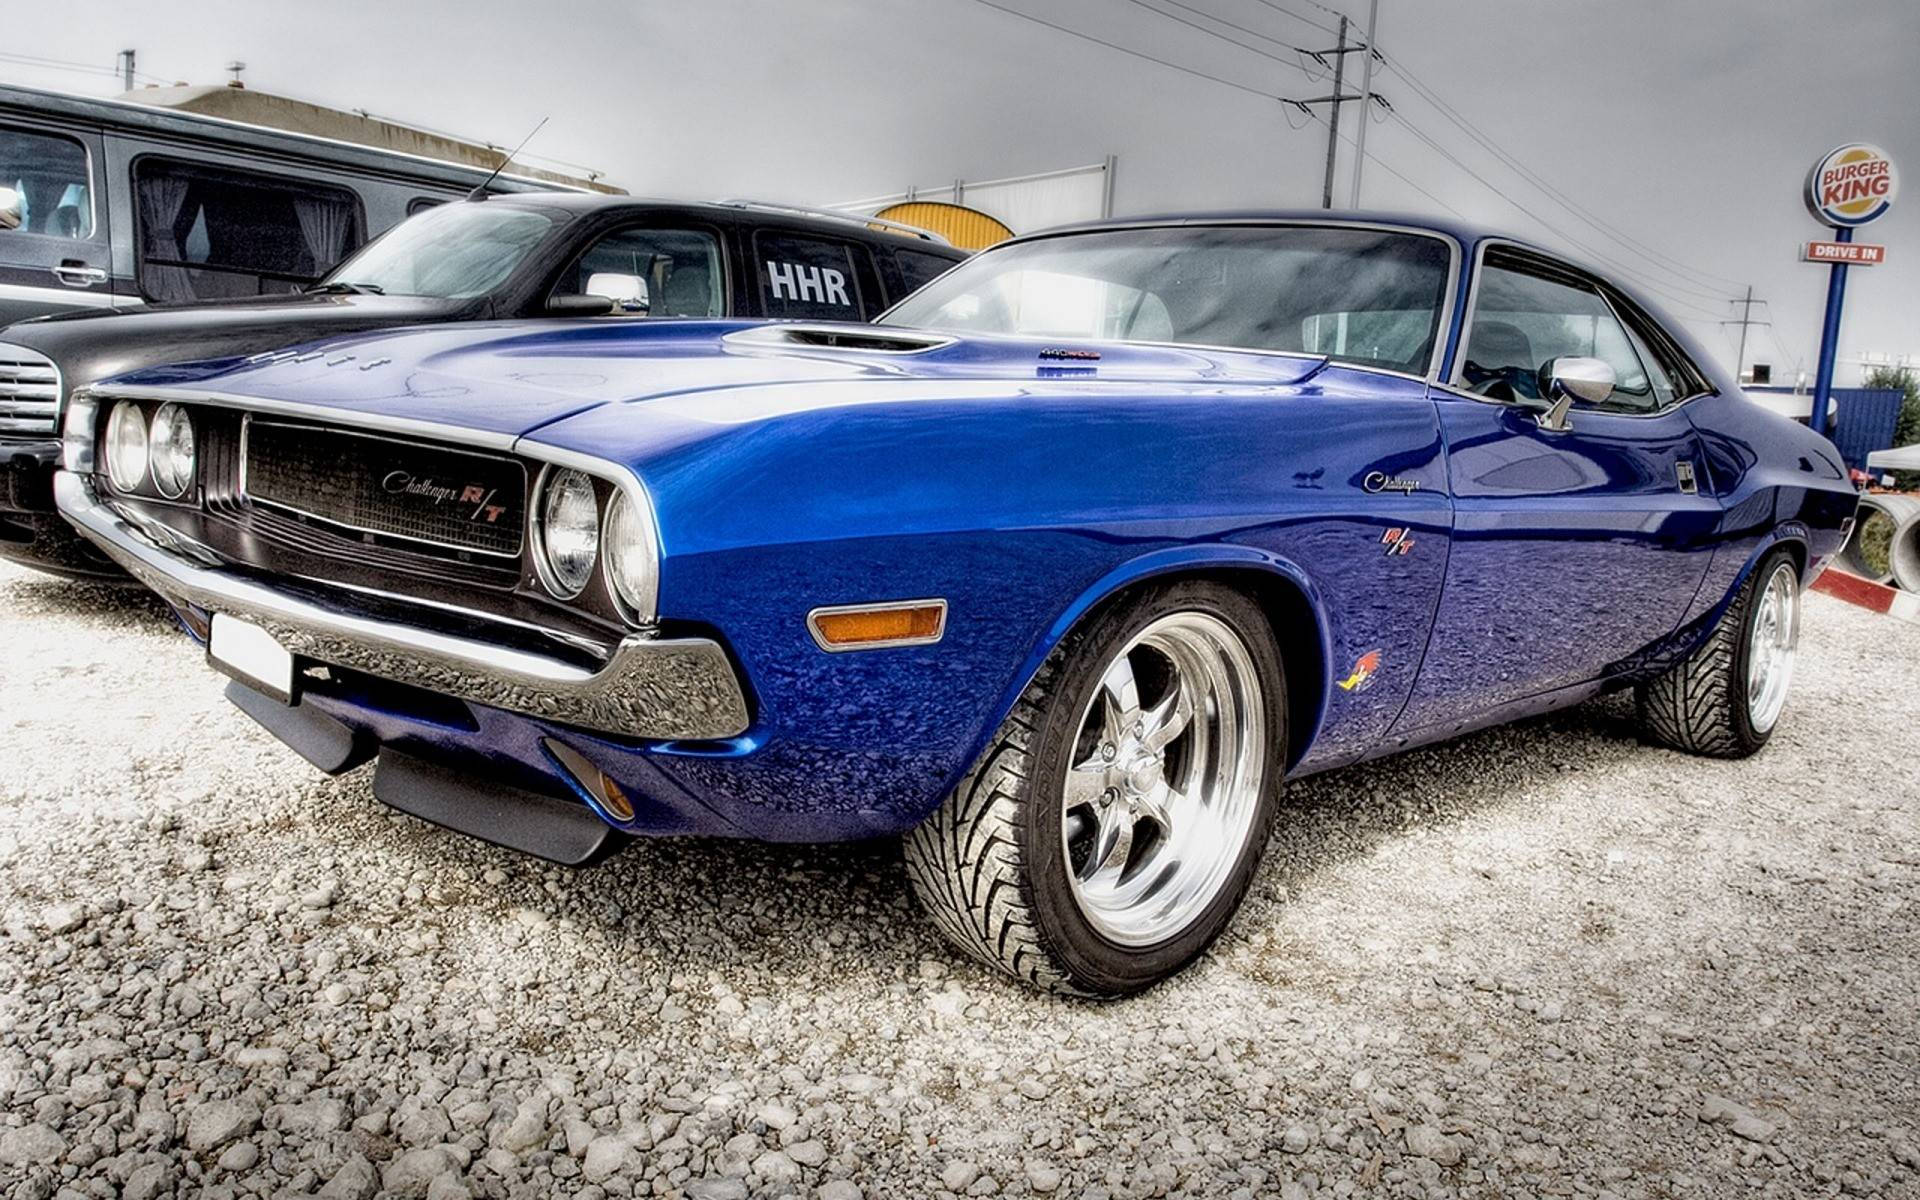 Blue Dodge Car Wallpaper Blue Dodge Car Wallpaper 1920x1200